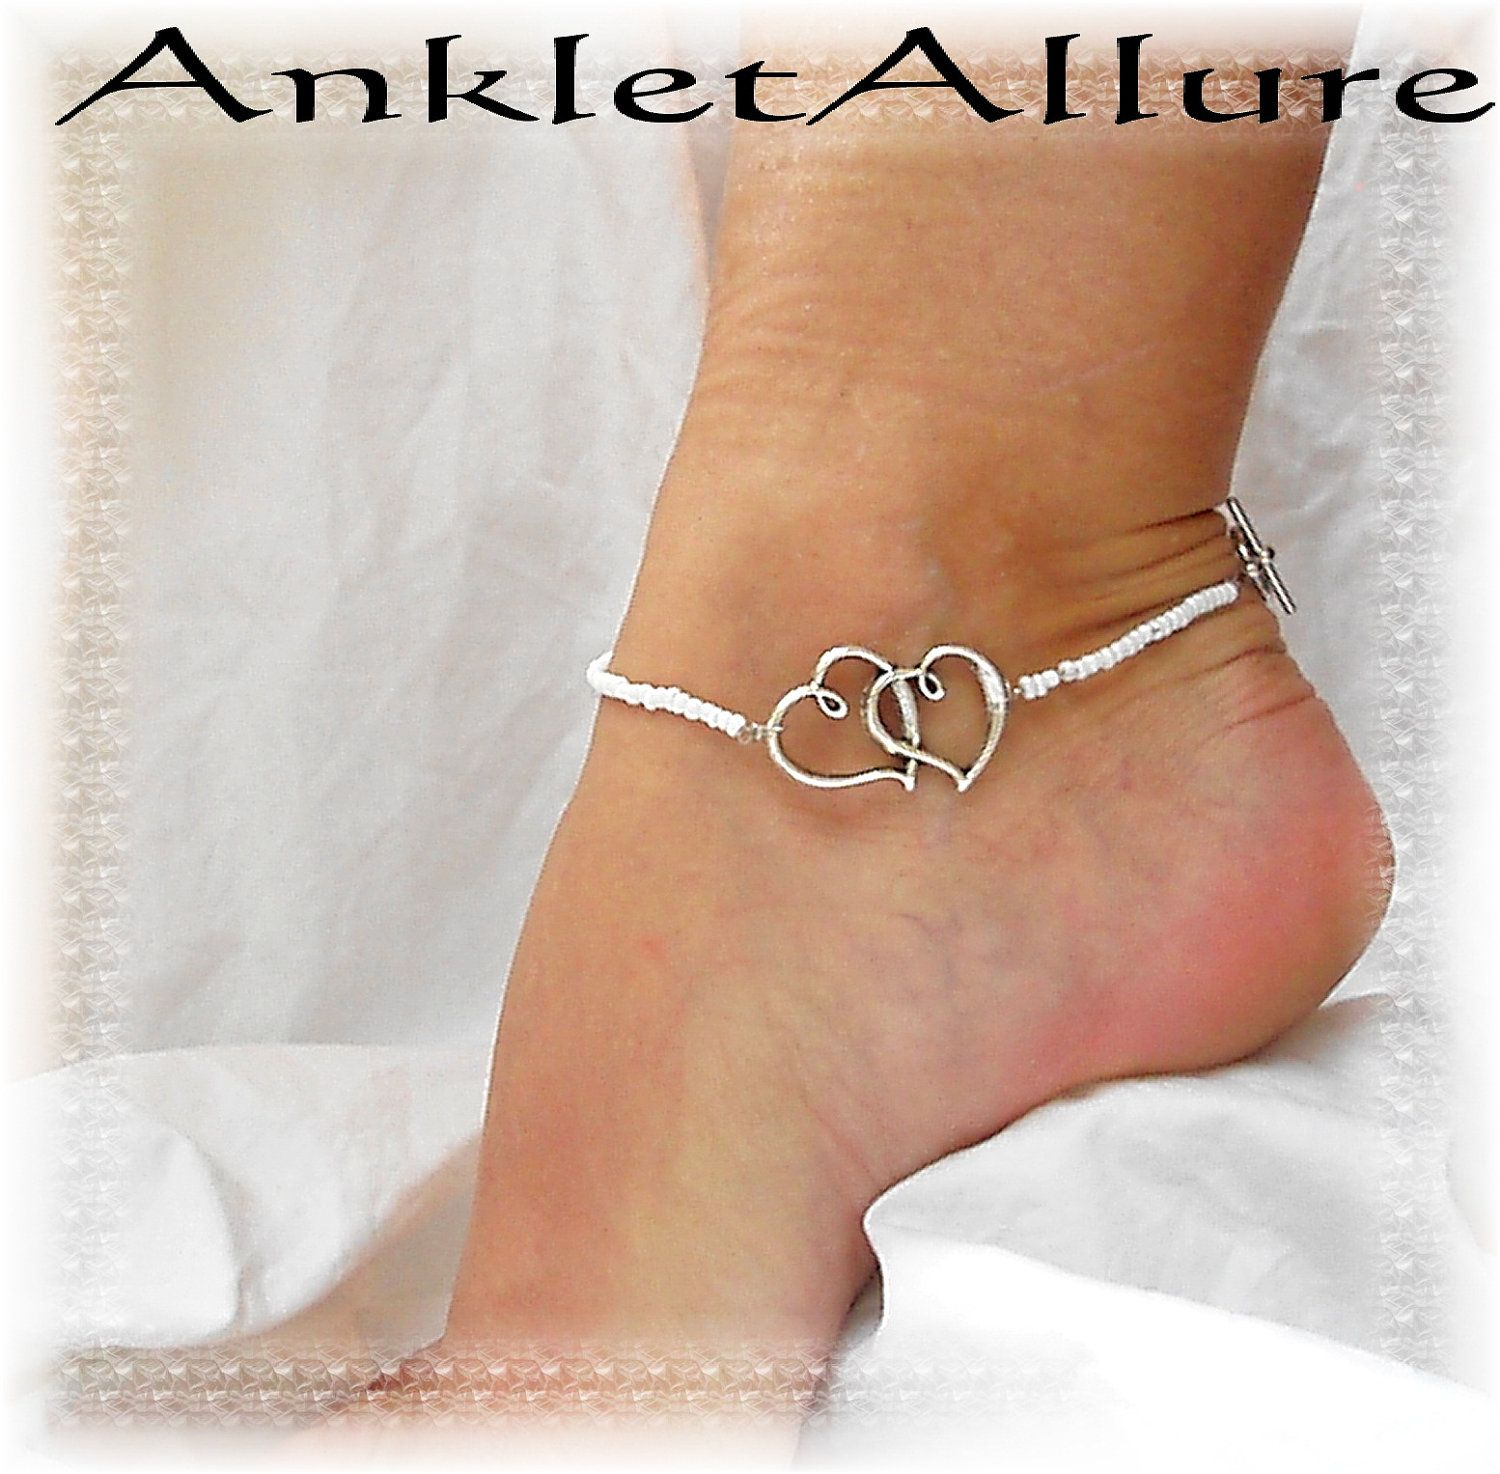 alloy pearl anniversary life school anklet cheap gift foot infinite with double pendant picture for chain charms jewelry occasion new pattern silver ankle metals type engagement beads product wedding bracelets plated online party shape